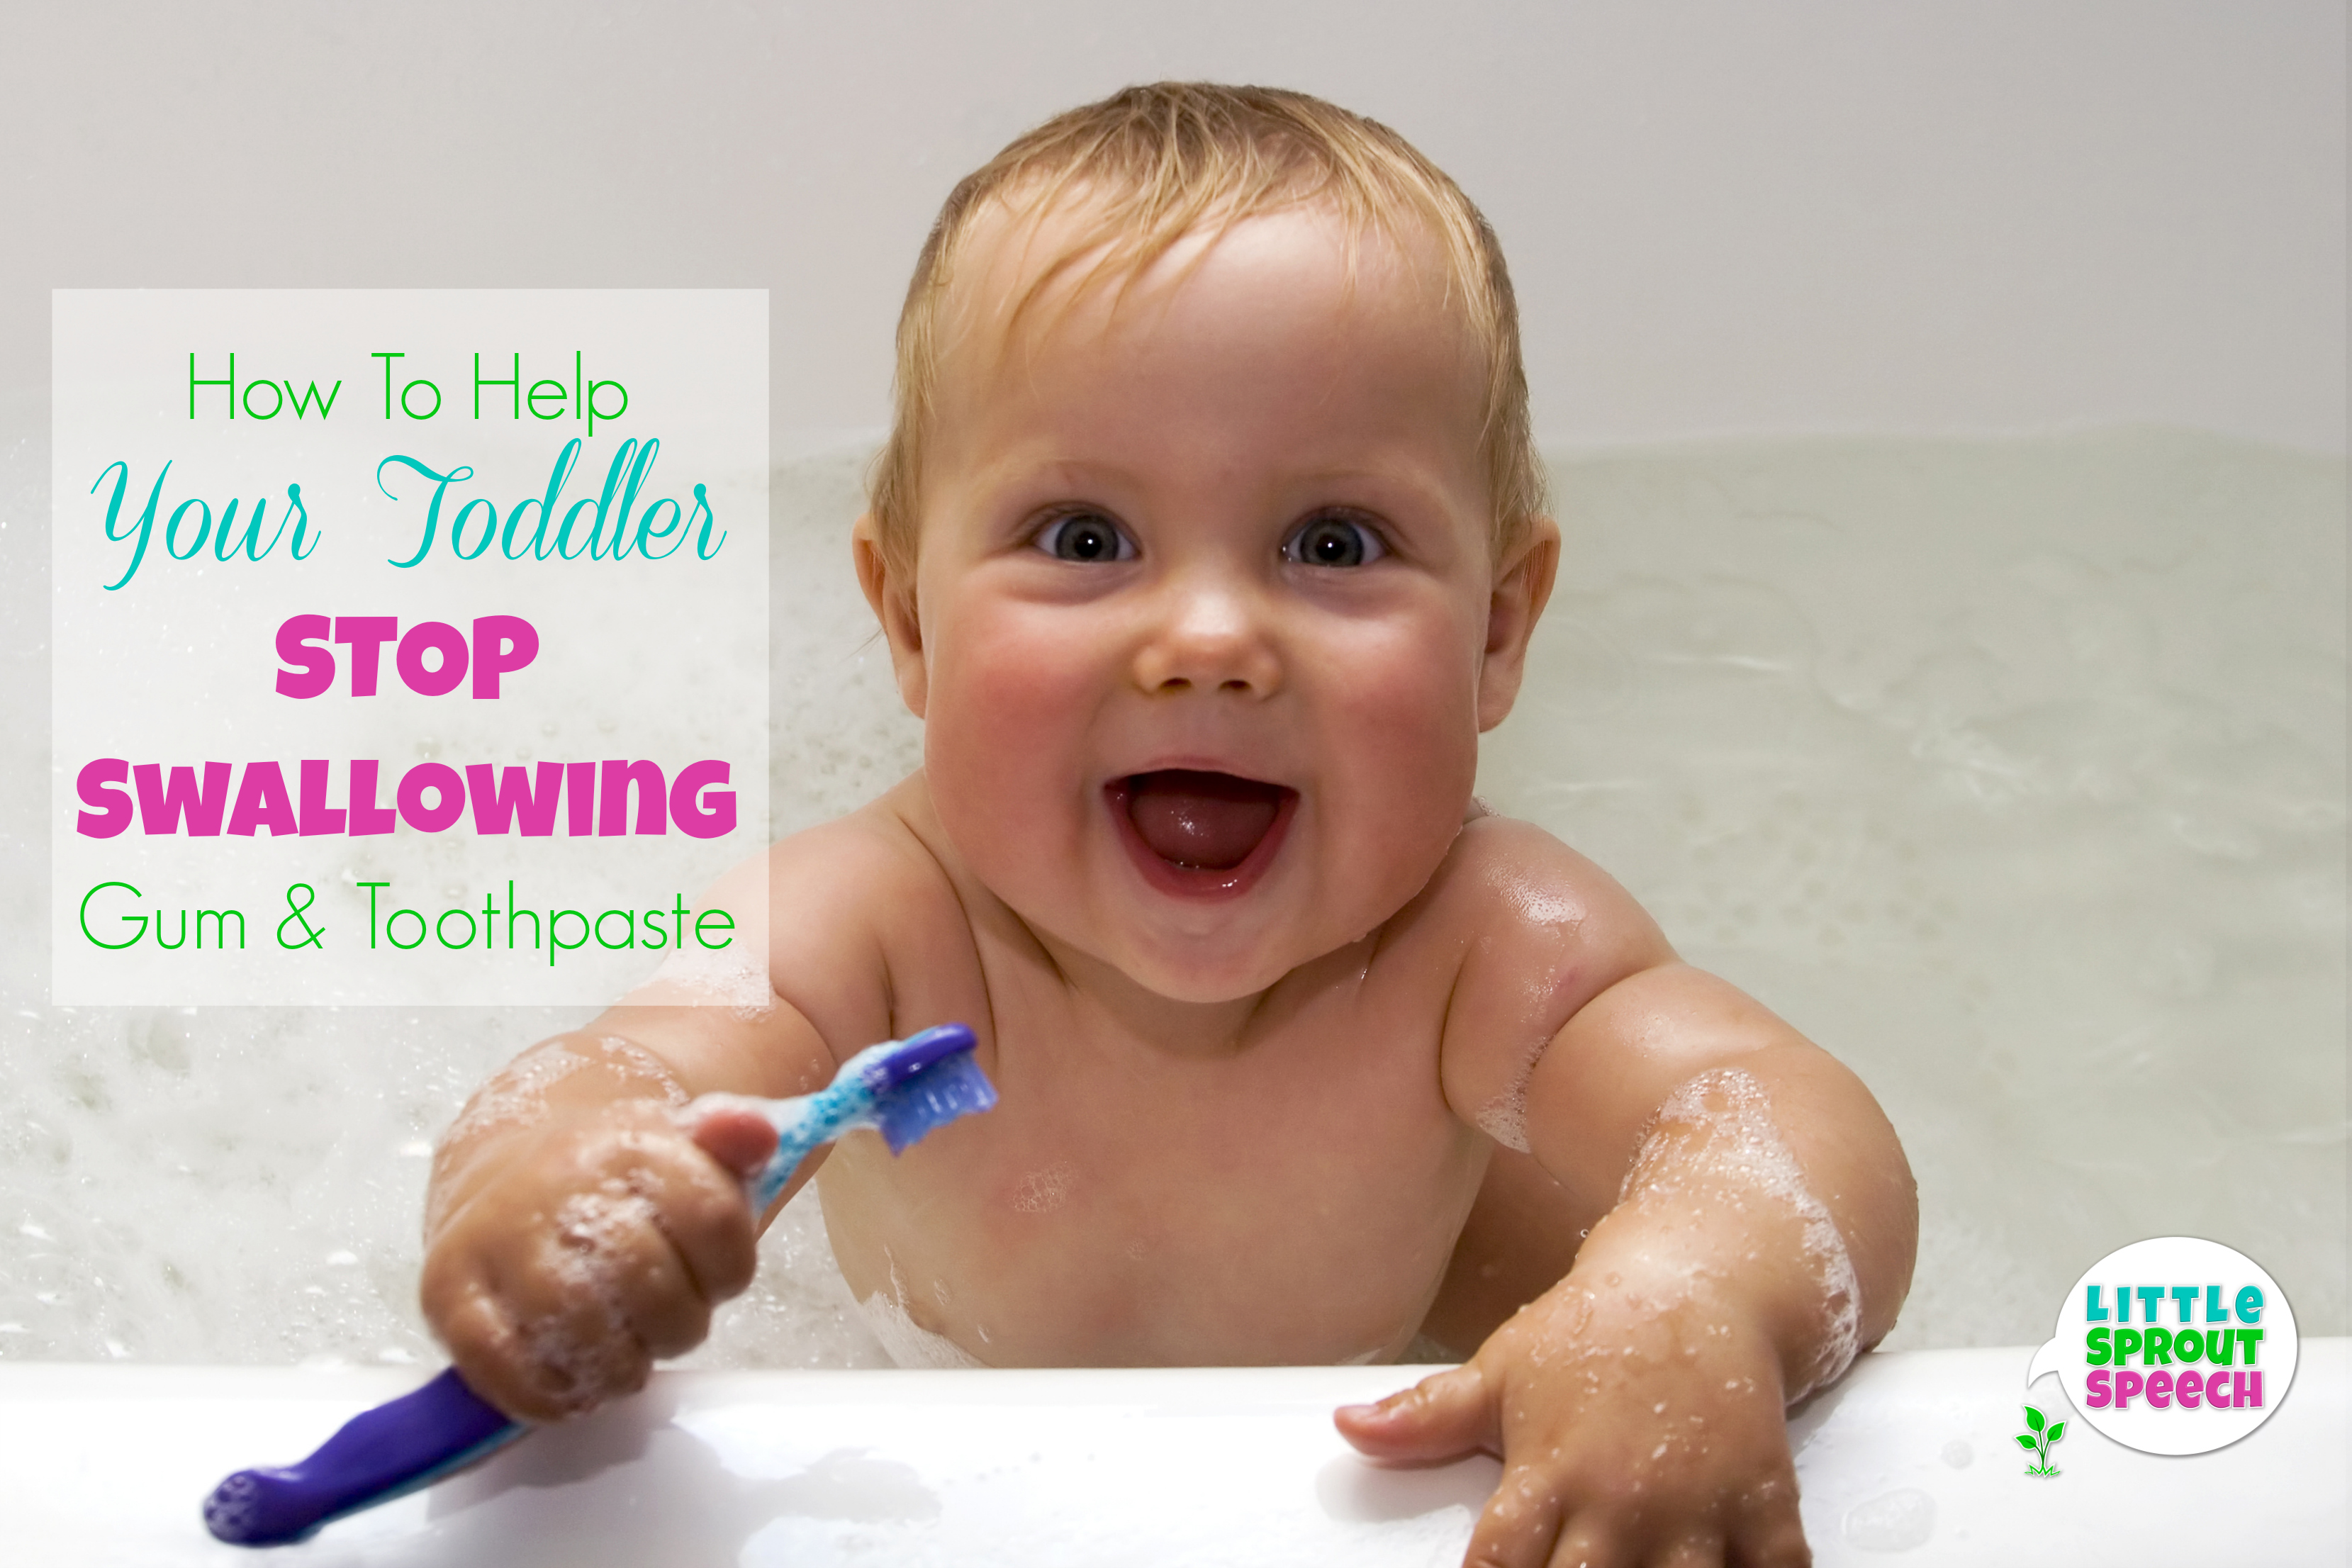 Smiling baby with toothbrush